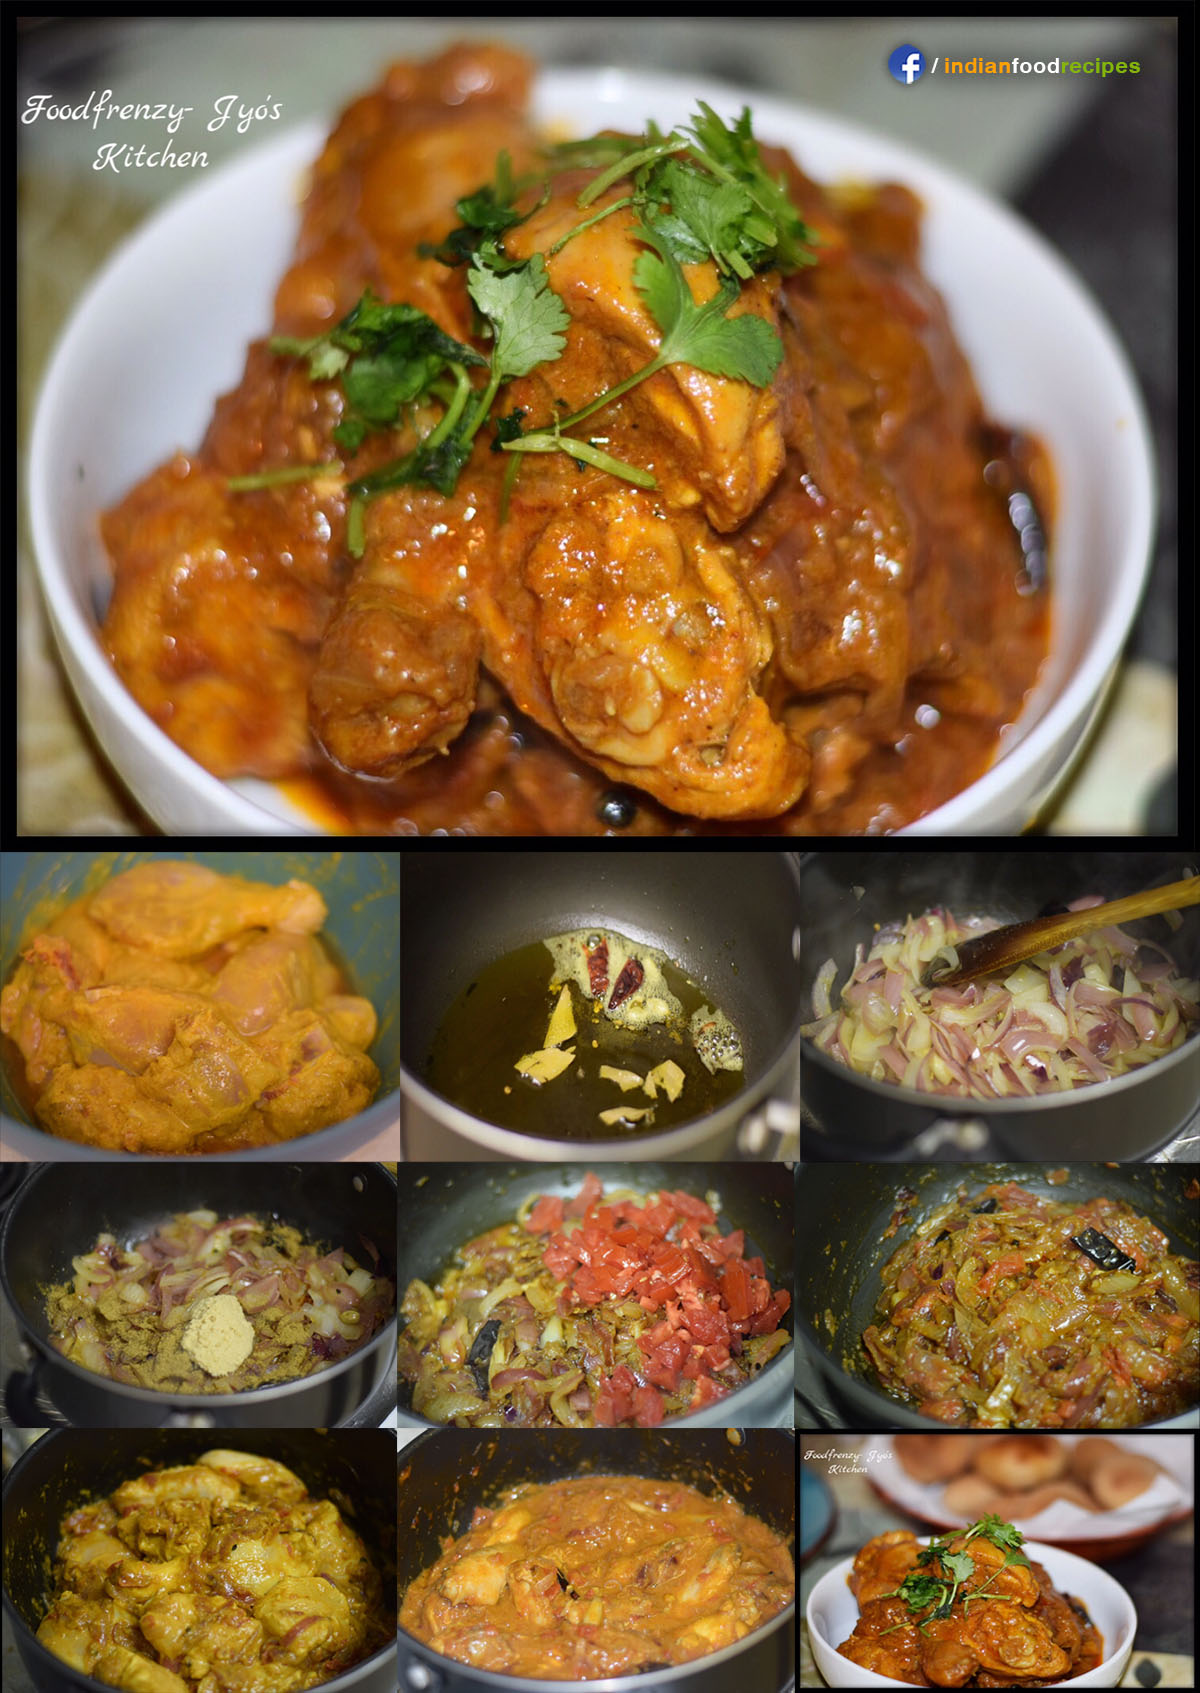 Bachelor's Chicken Curry recipe step by step